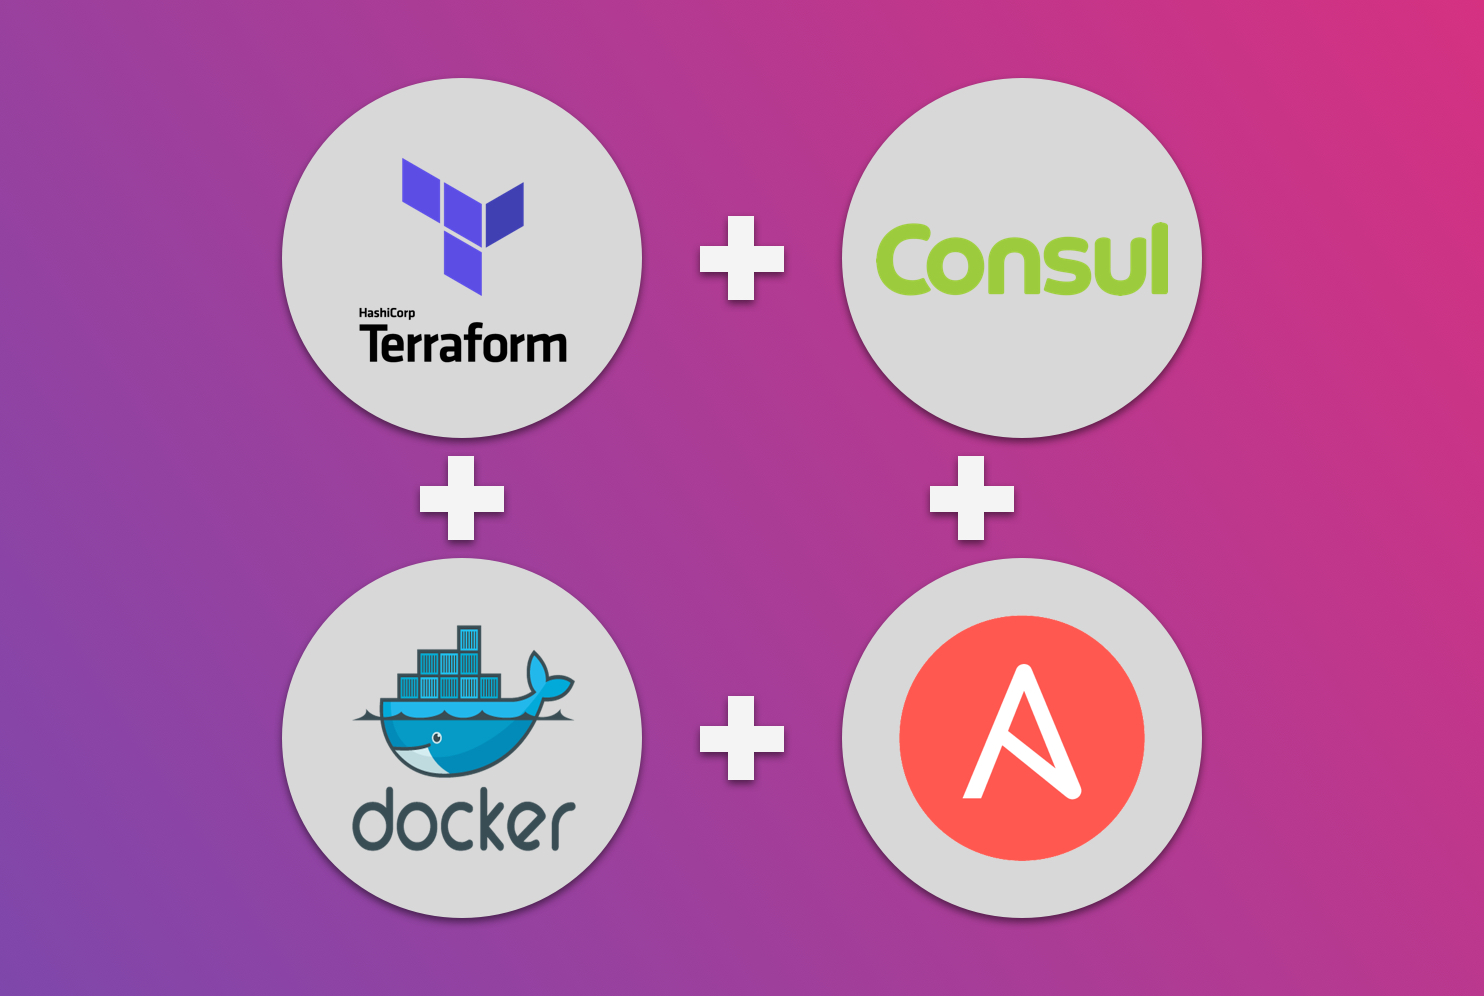 Docker + Ansible + Consul + Terraform